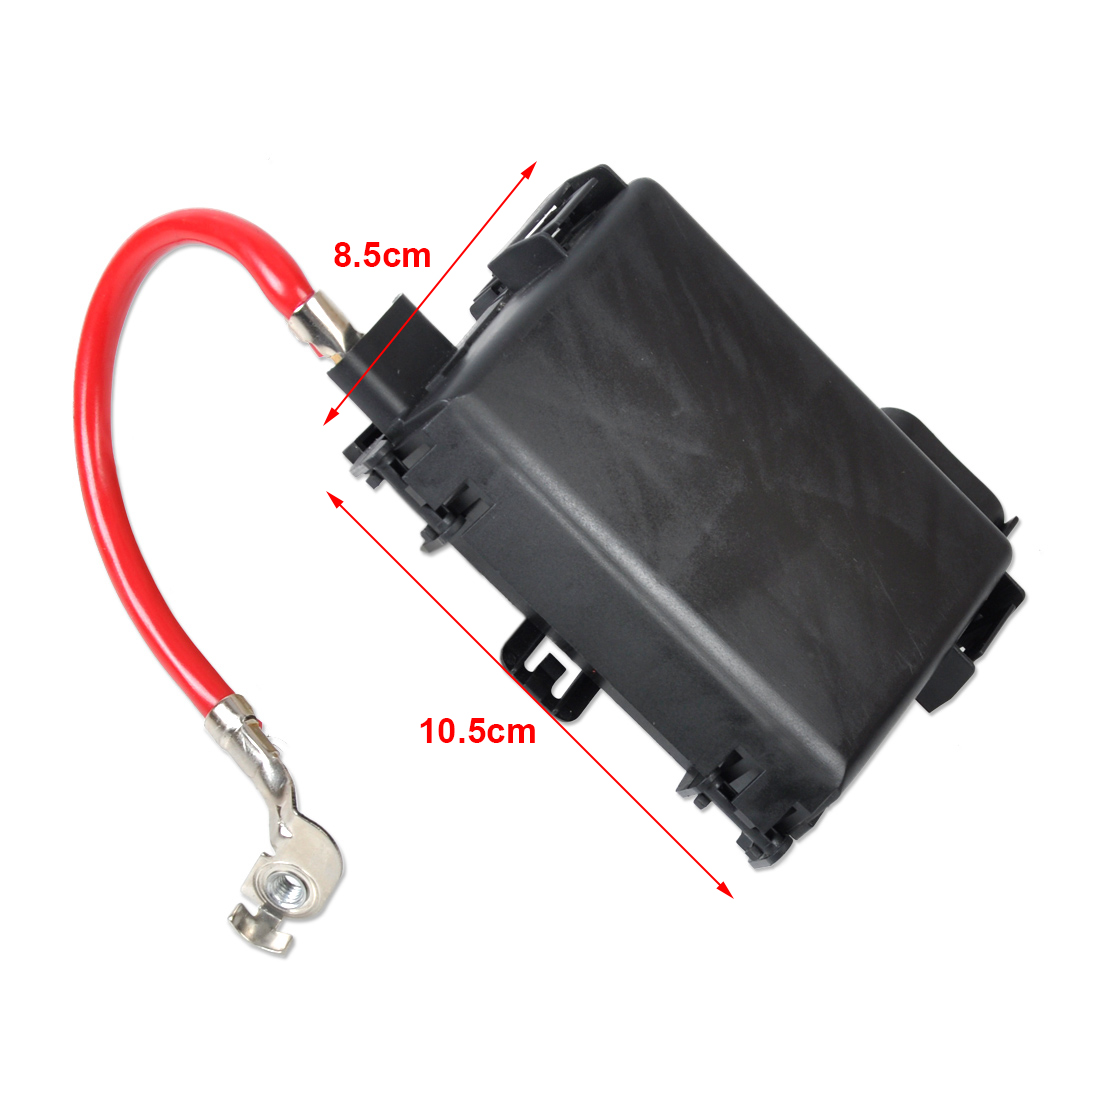 medium resolution of citall 1j0937550a fuse box battery terminal for vw beetle golf golf city jetta audi a3 s3